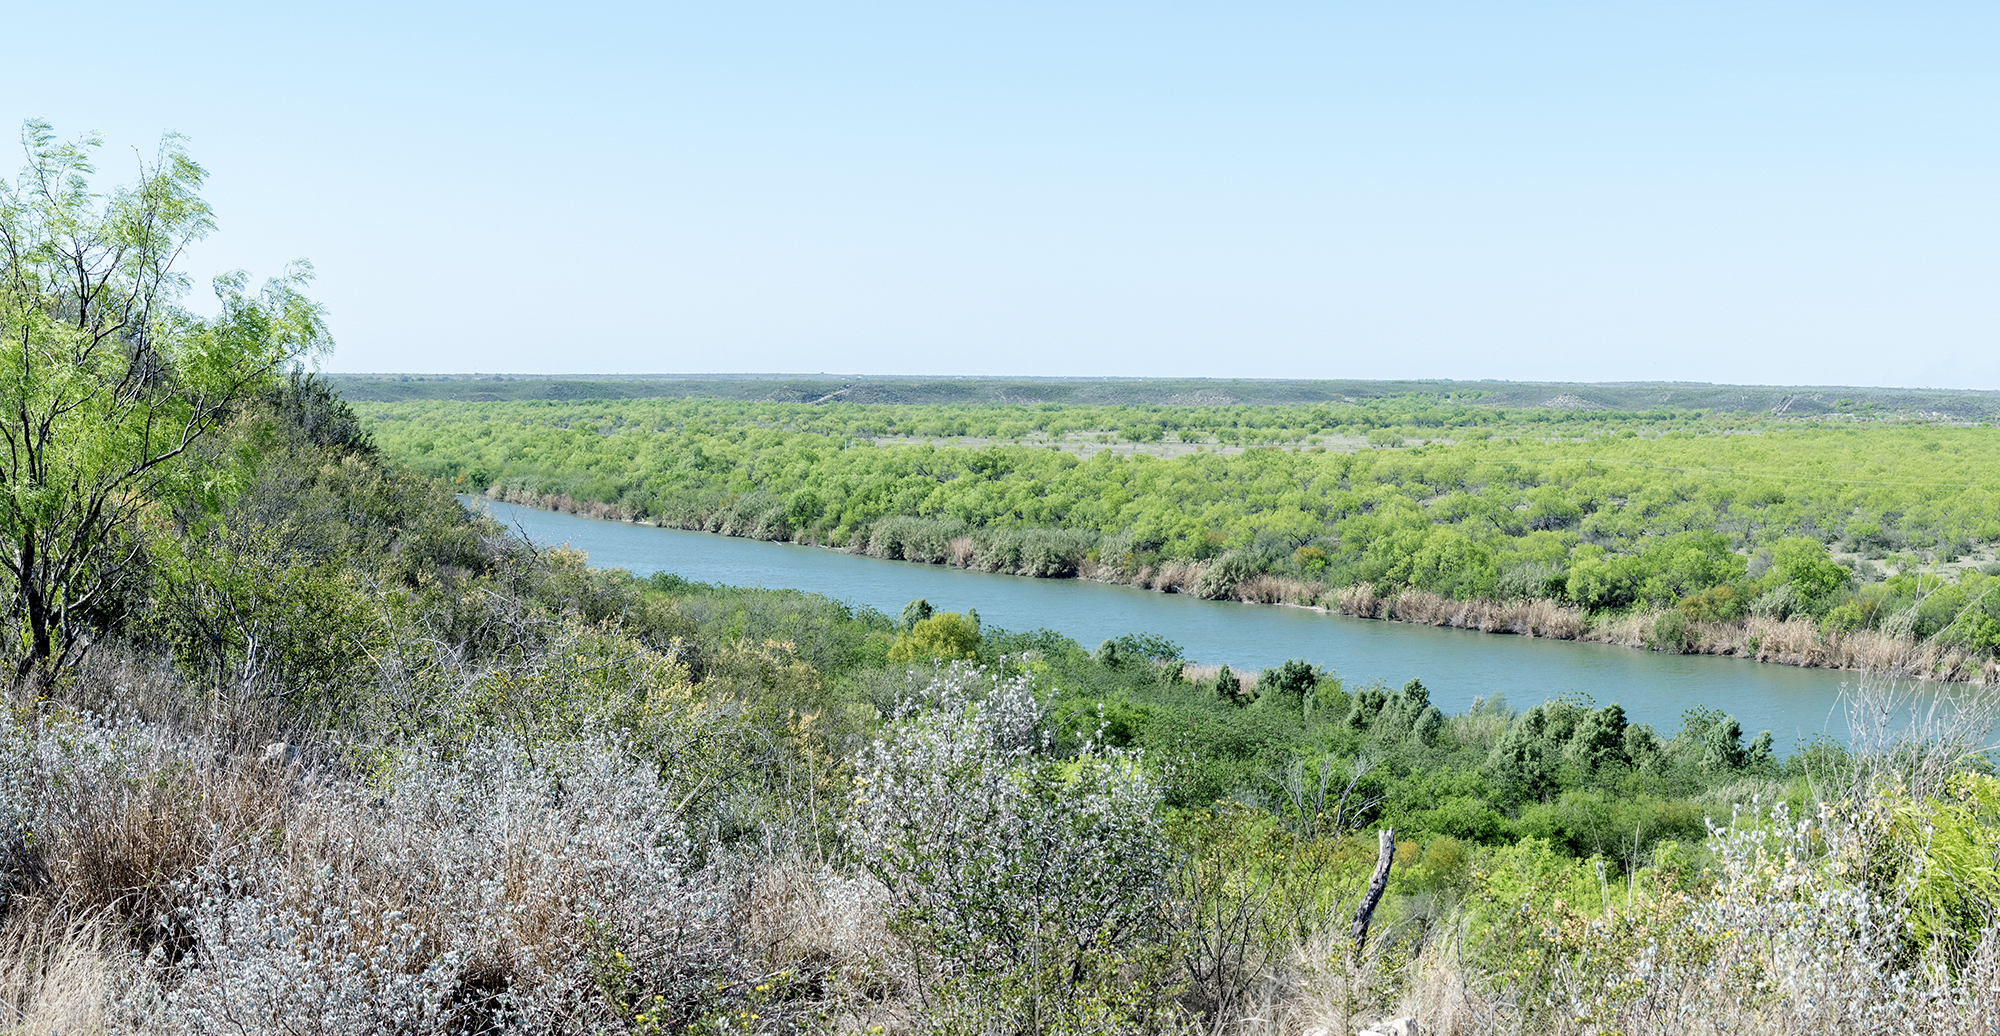 South Texas Plains ecoregion of the San Antonio River